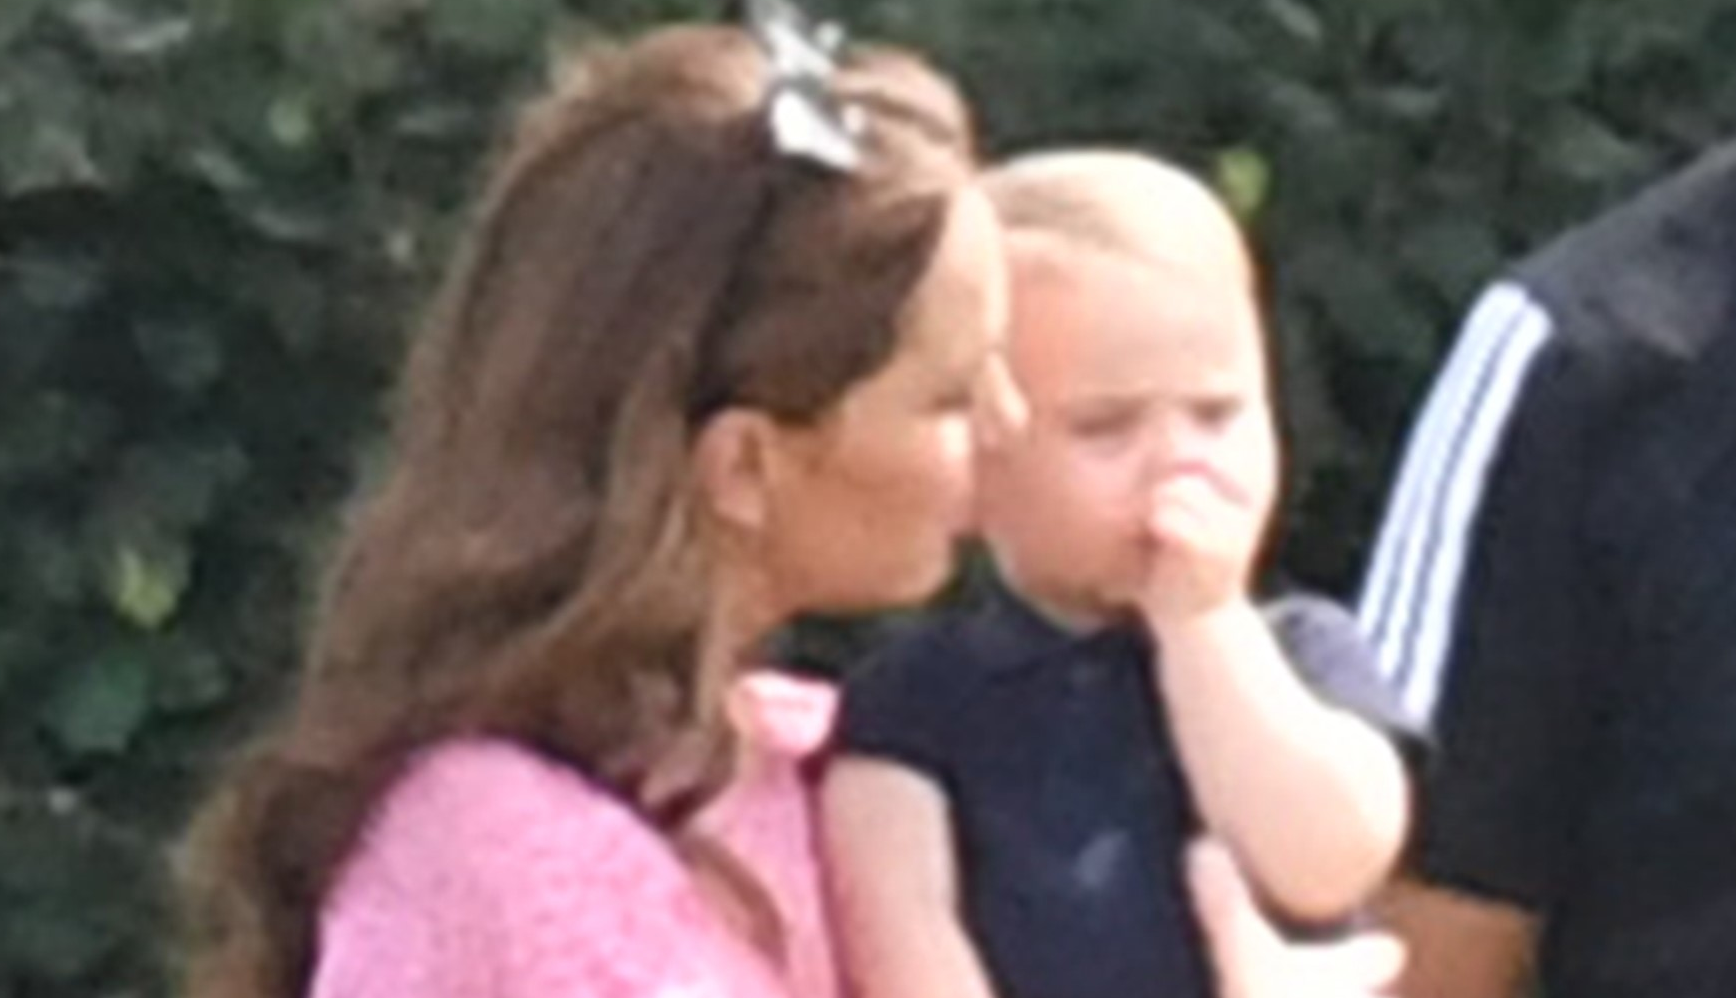 Prince Louis caught sucking his thumb; Princess Diana would not have approved